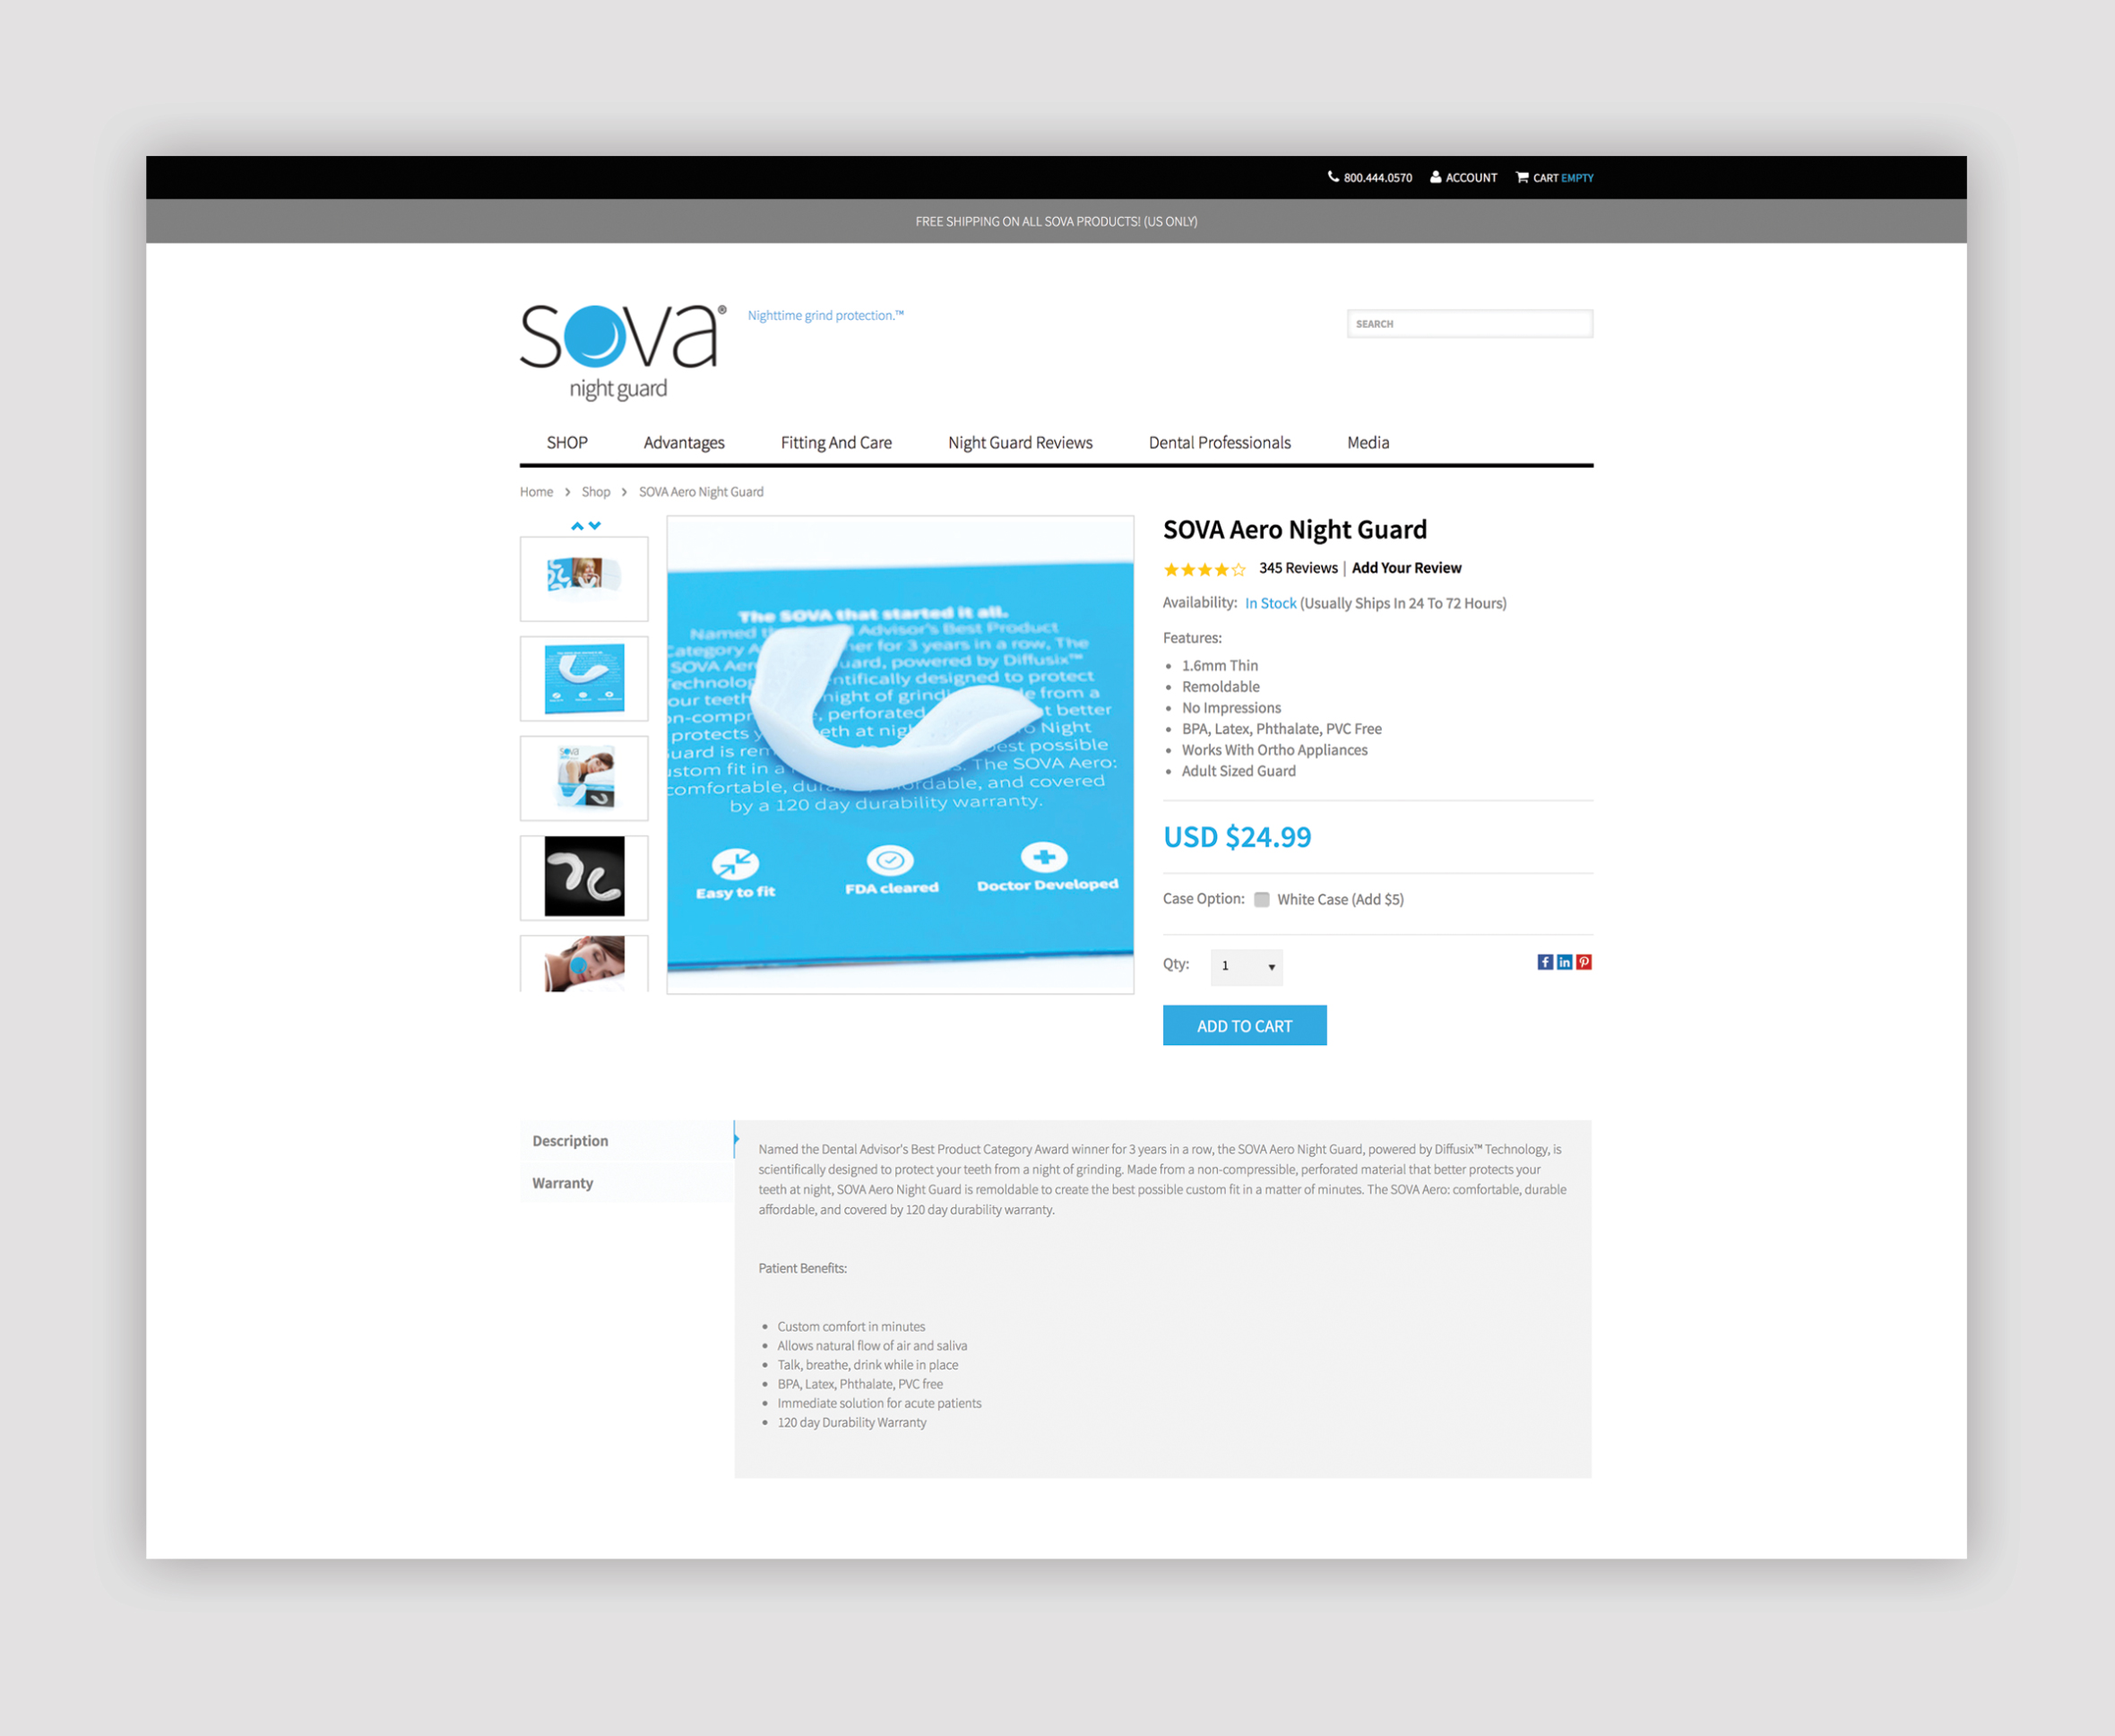 sova_website_product